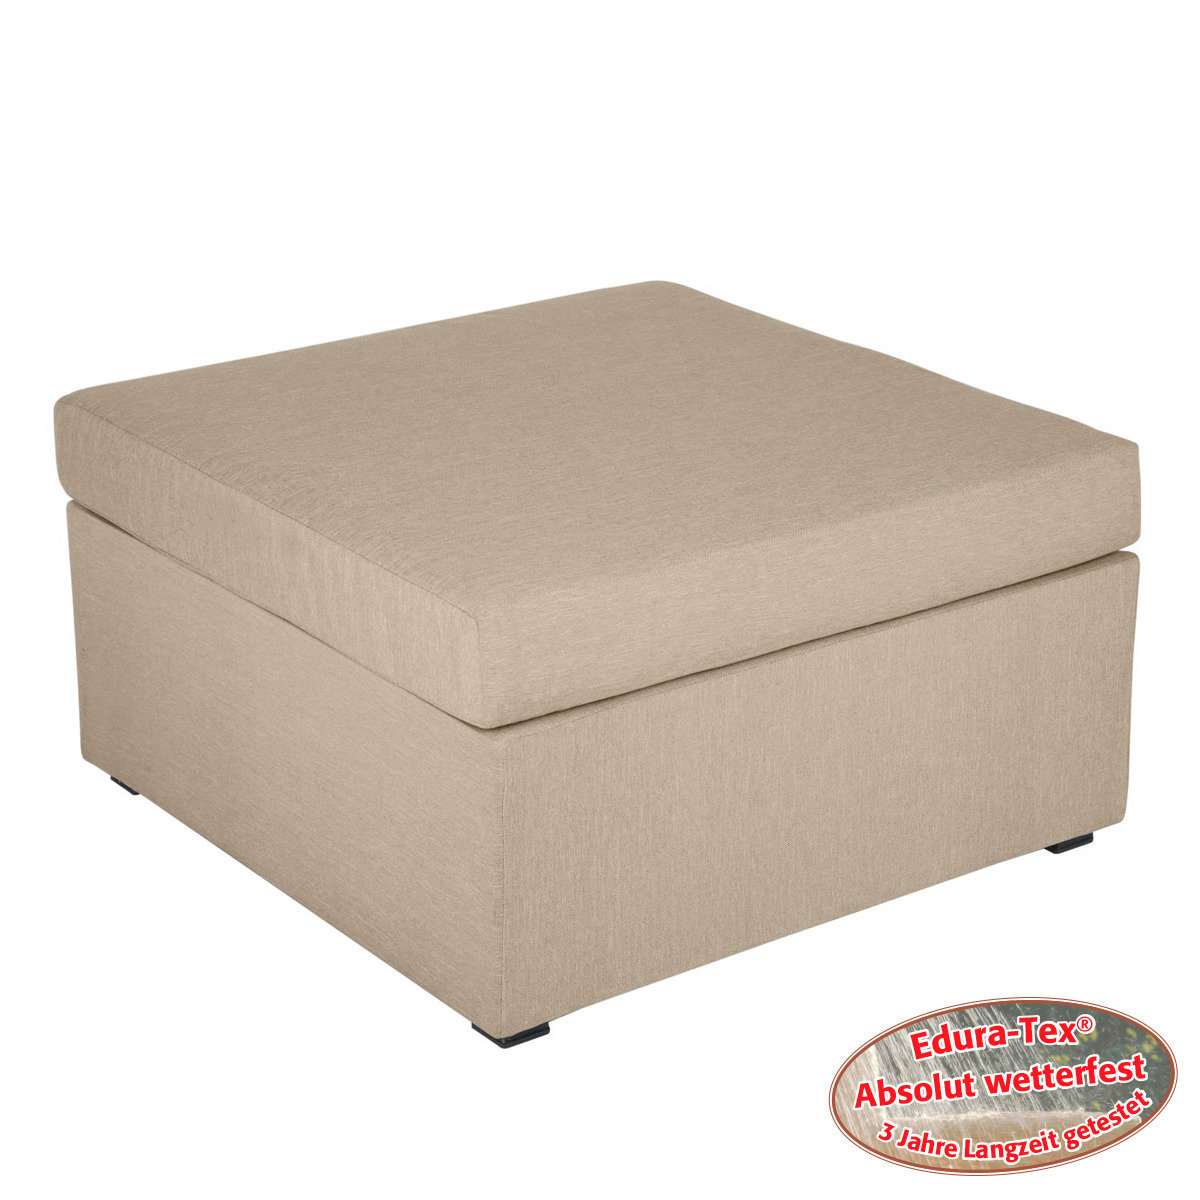 Hocker Outdoor Outdoor Hocker Hollywood Von Gärtner Pötschke